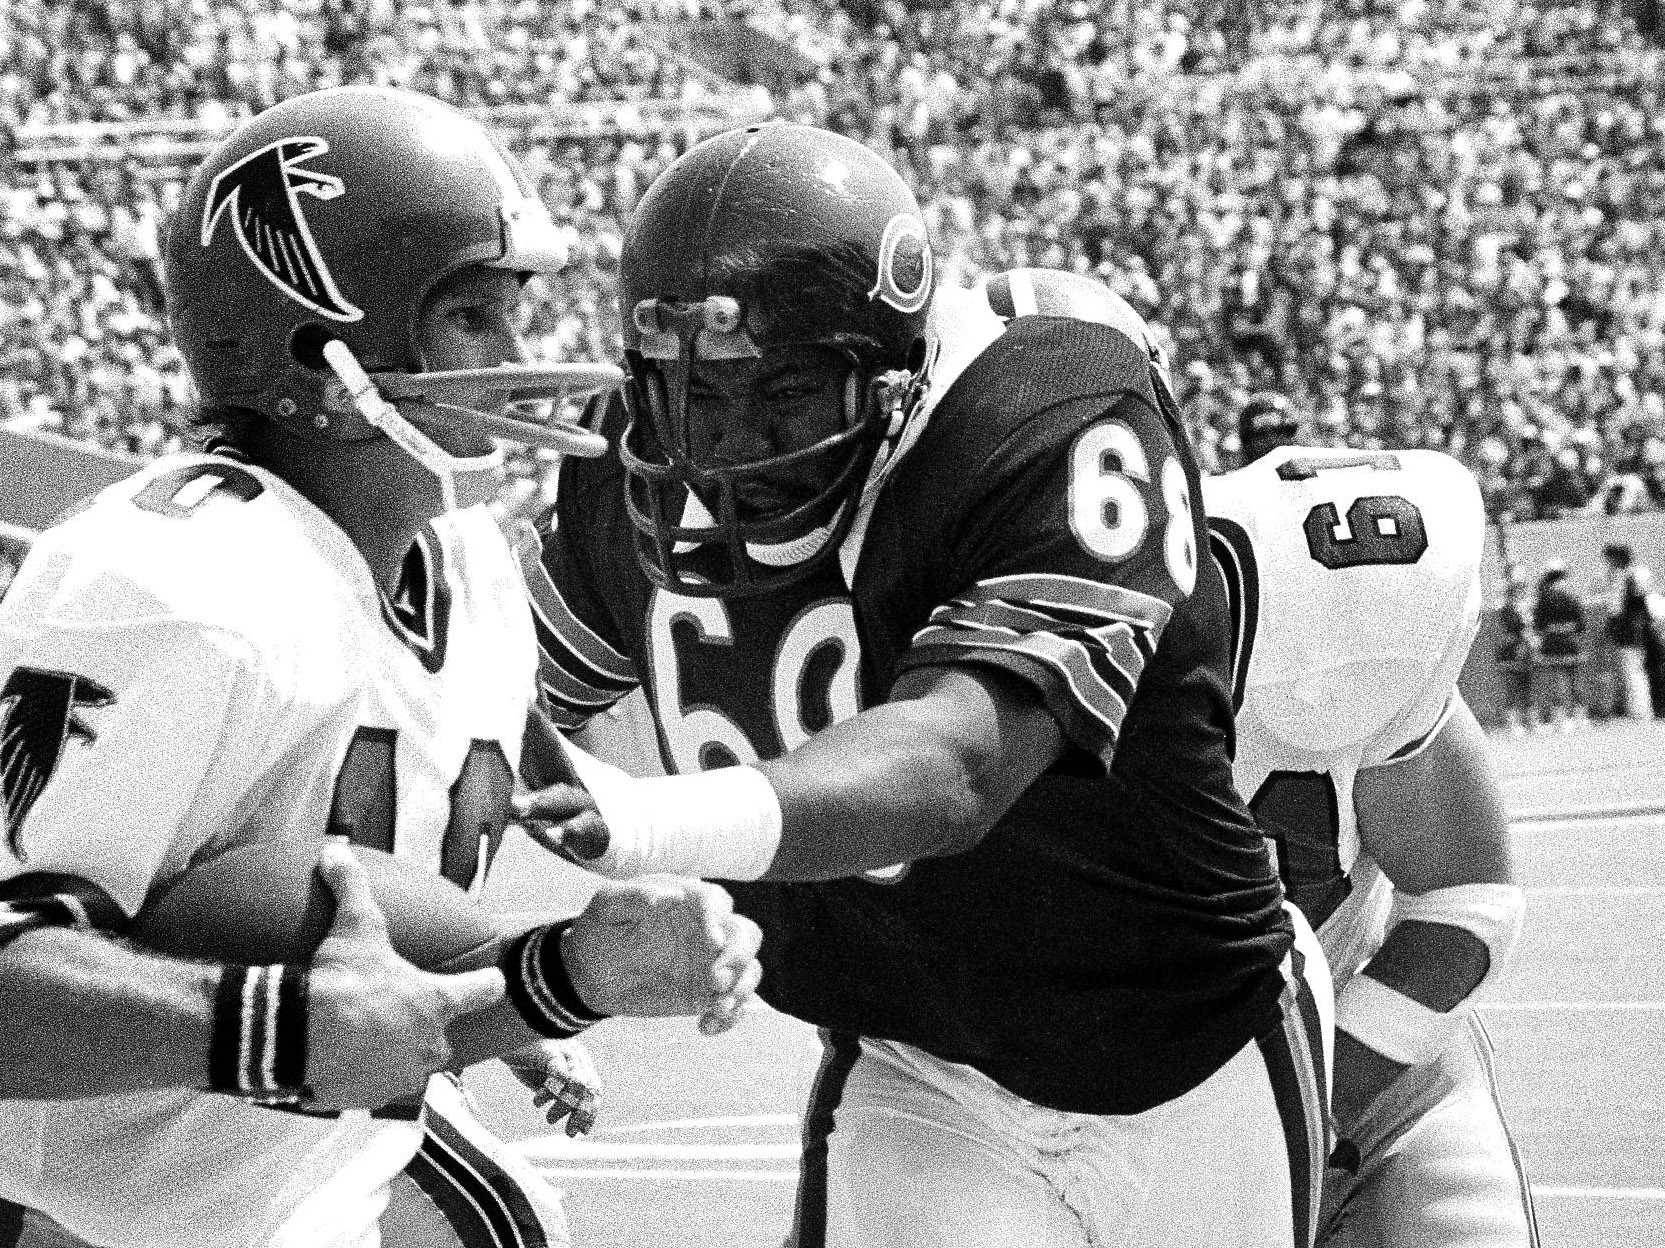 Defensive lineman Jim Osborne, 186 games, is tied for fifth among most games played in Bears history